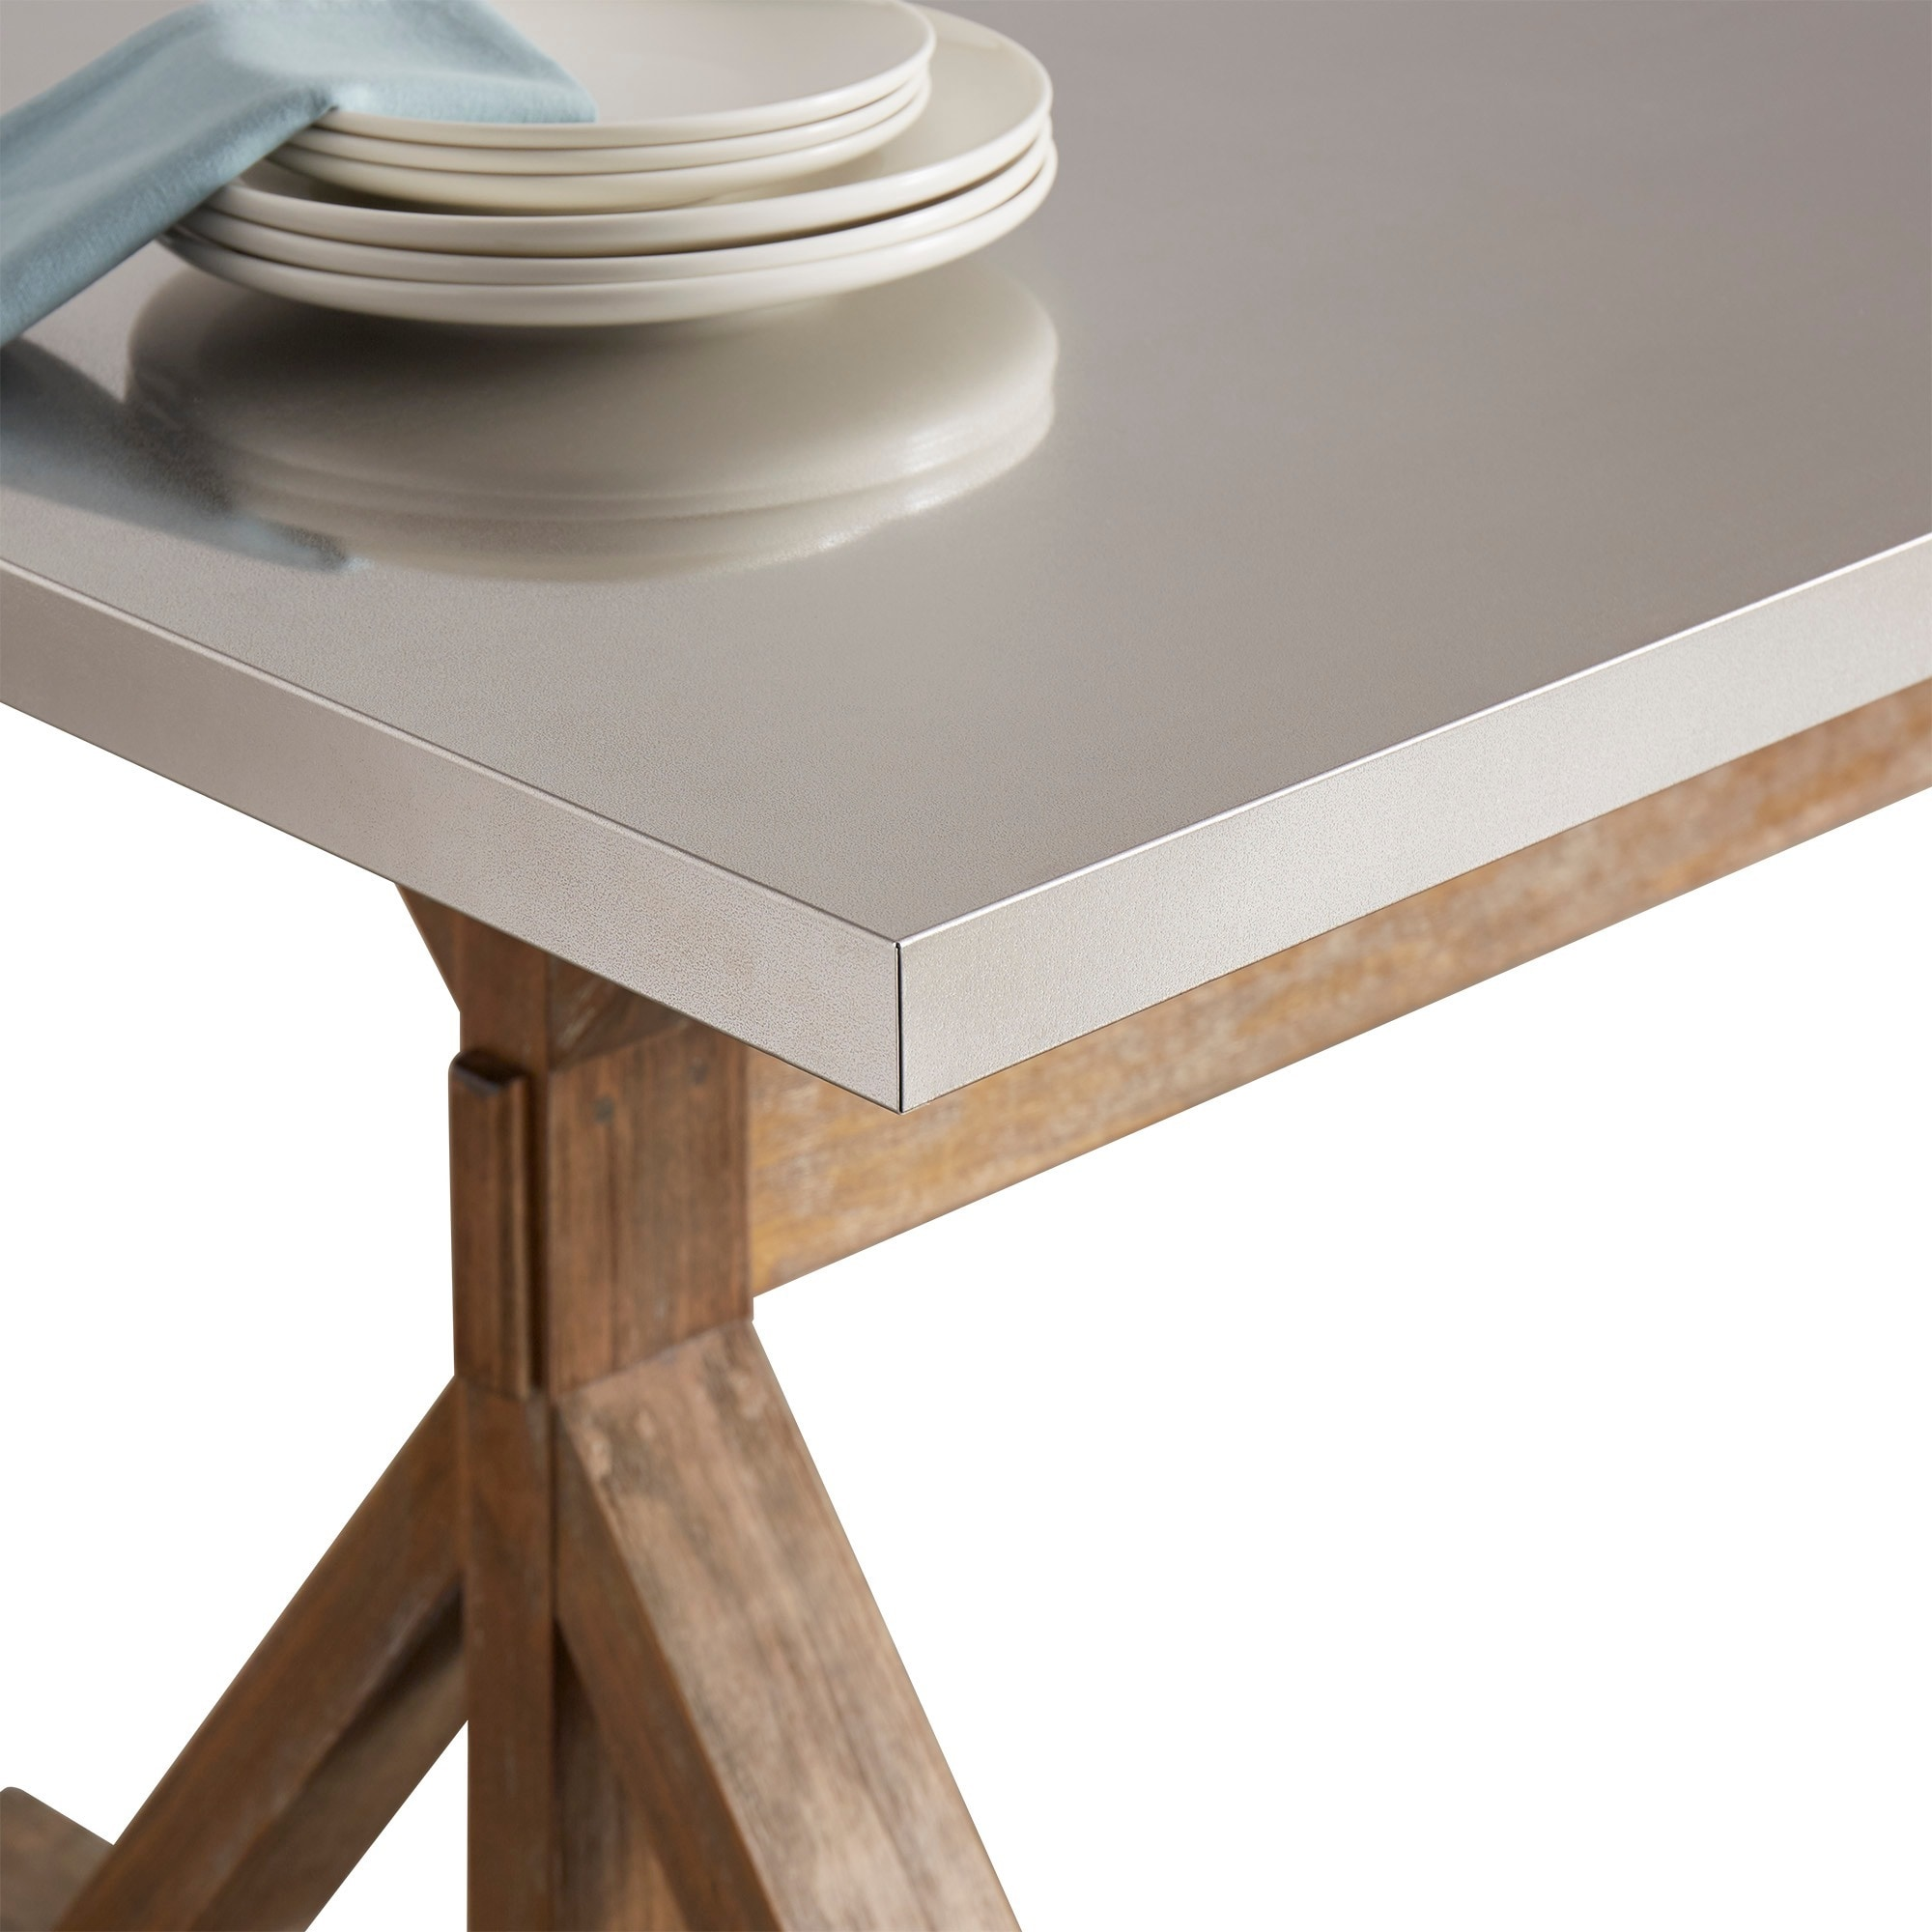 Shop Trumbull Stainless Steel Dining Table by